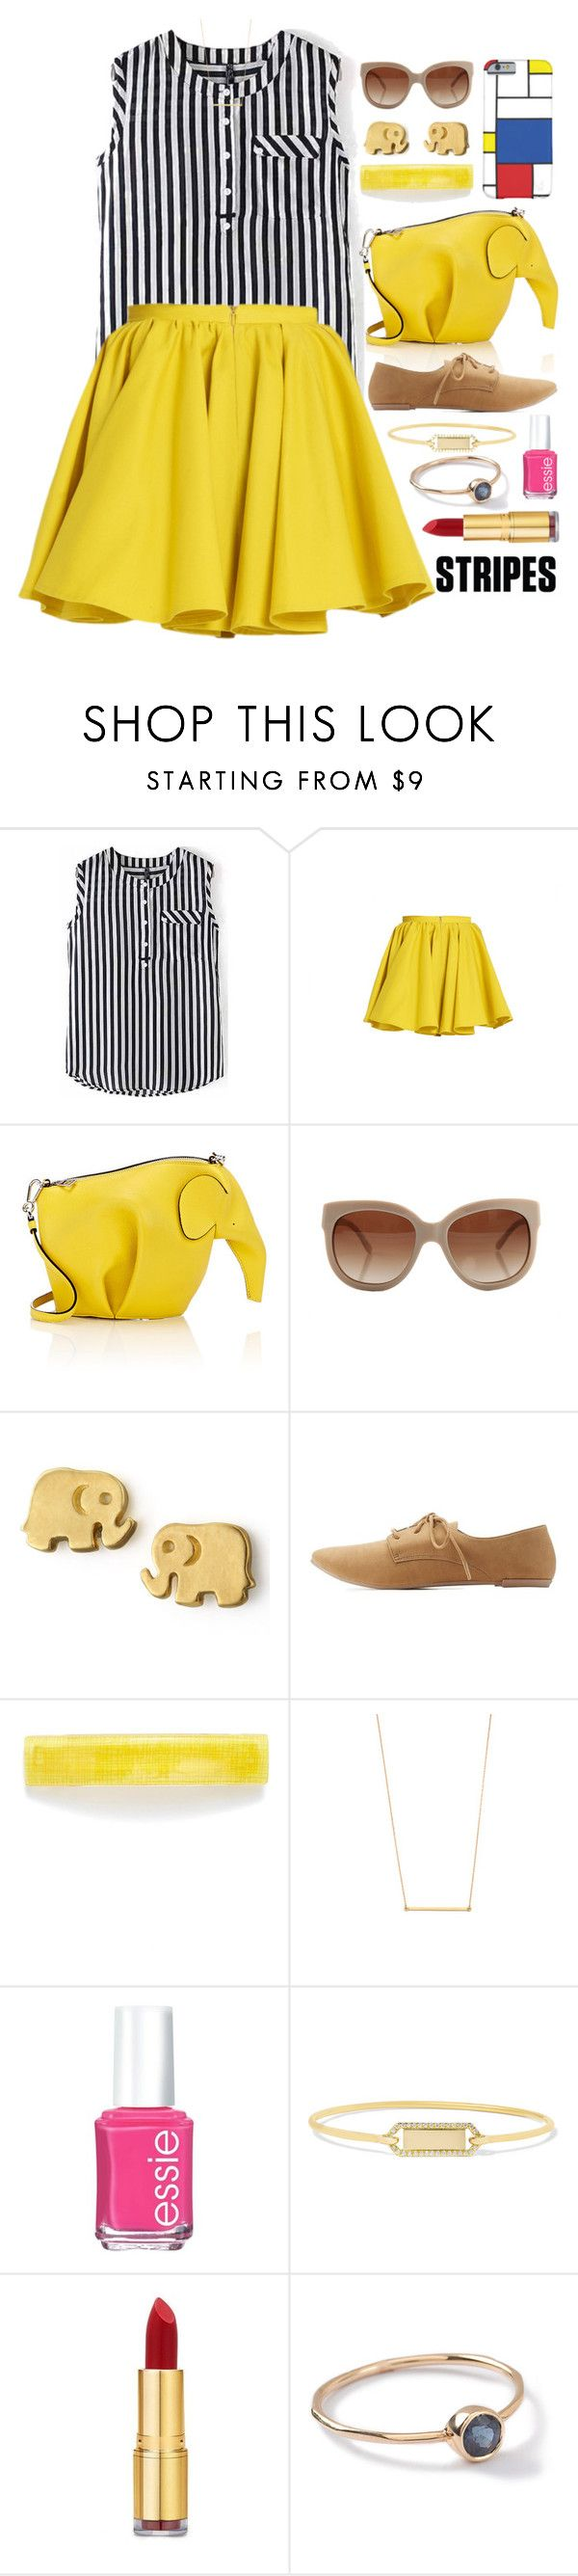 """""""An Elephant Never Forgets Outfit"""" by ohsosartorial ❤ liked on Polyvore featuring Merci Me London, Loewe, STELLA McCARTNEY, Dogeared, Qupid, France Luxe, Kristen Elspeth, Essie, Jemma Wynne and Isaac Mizrahi"""